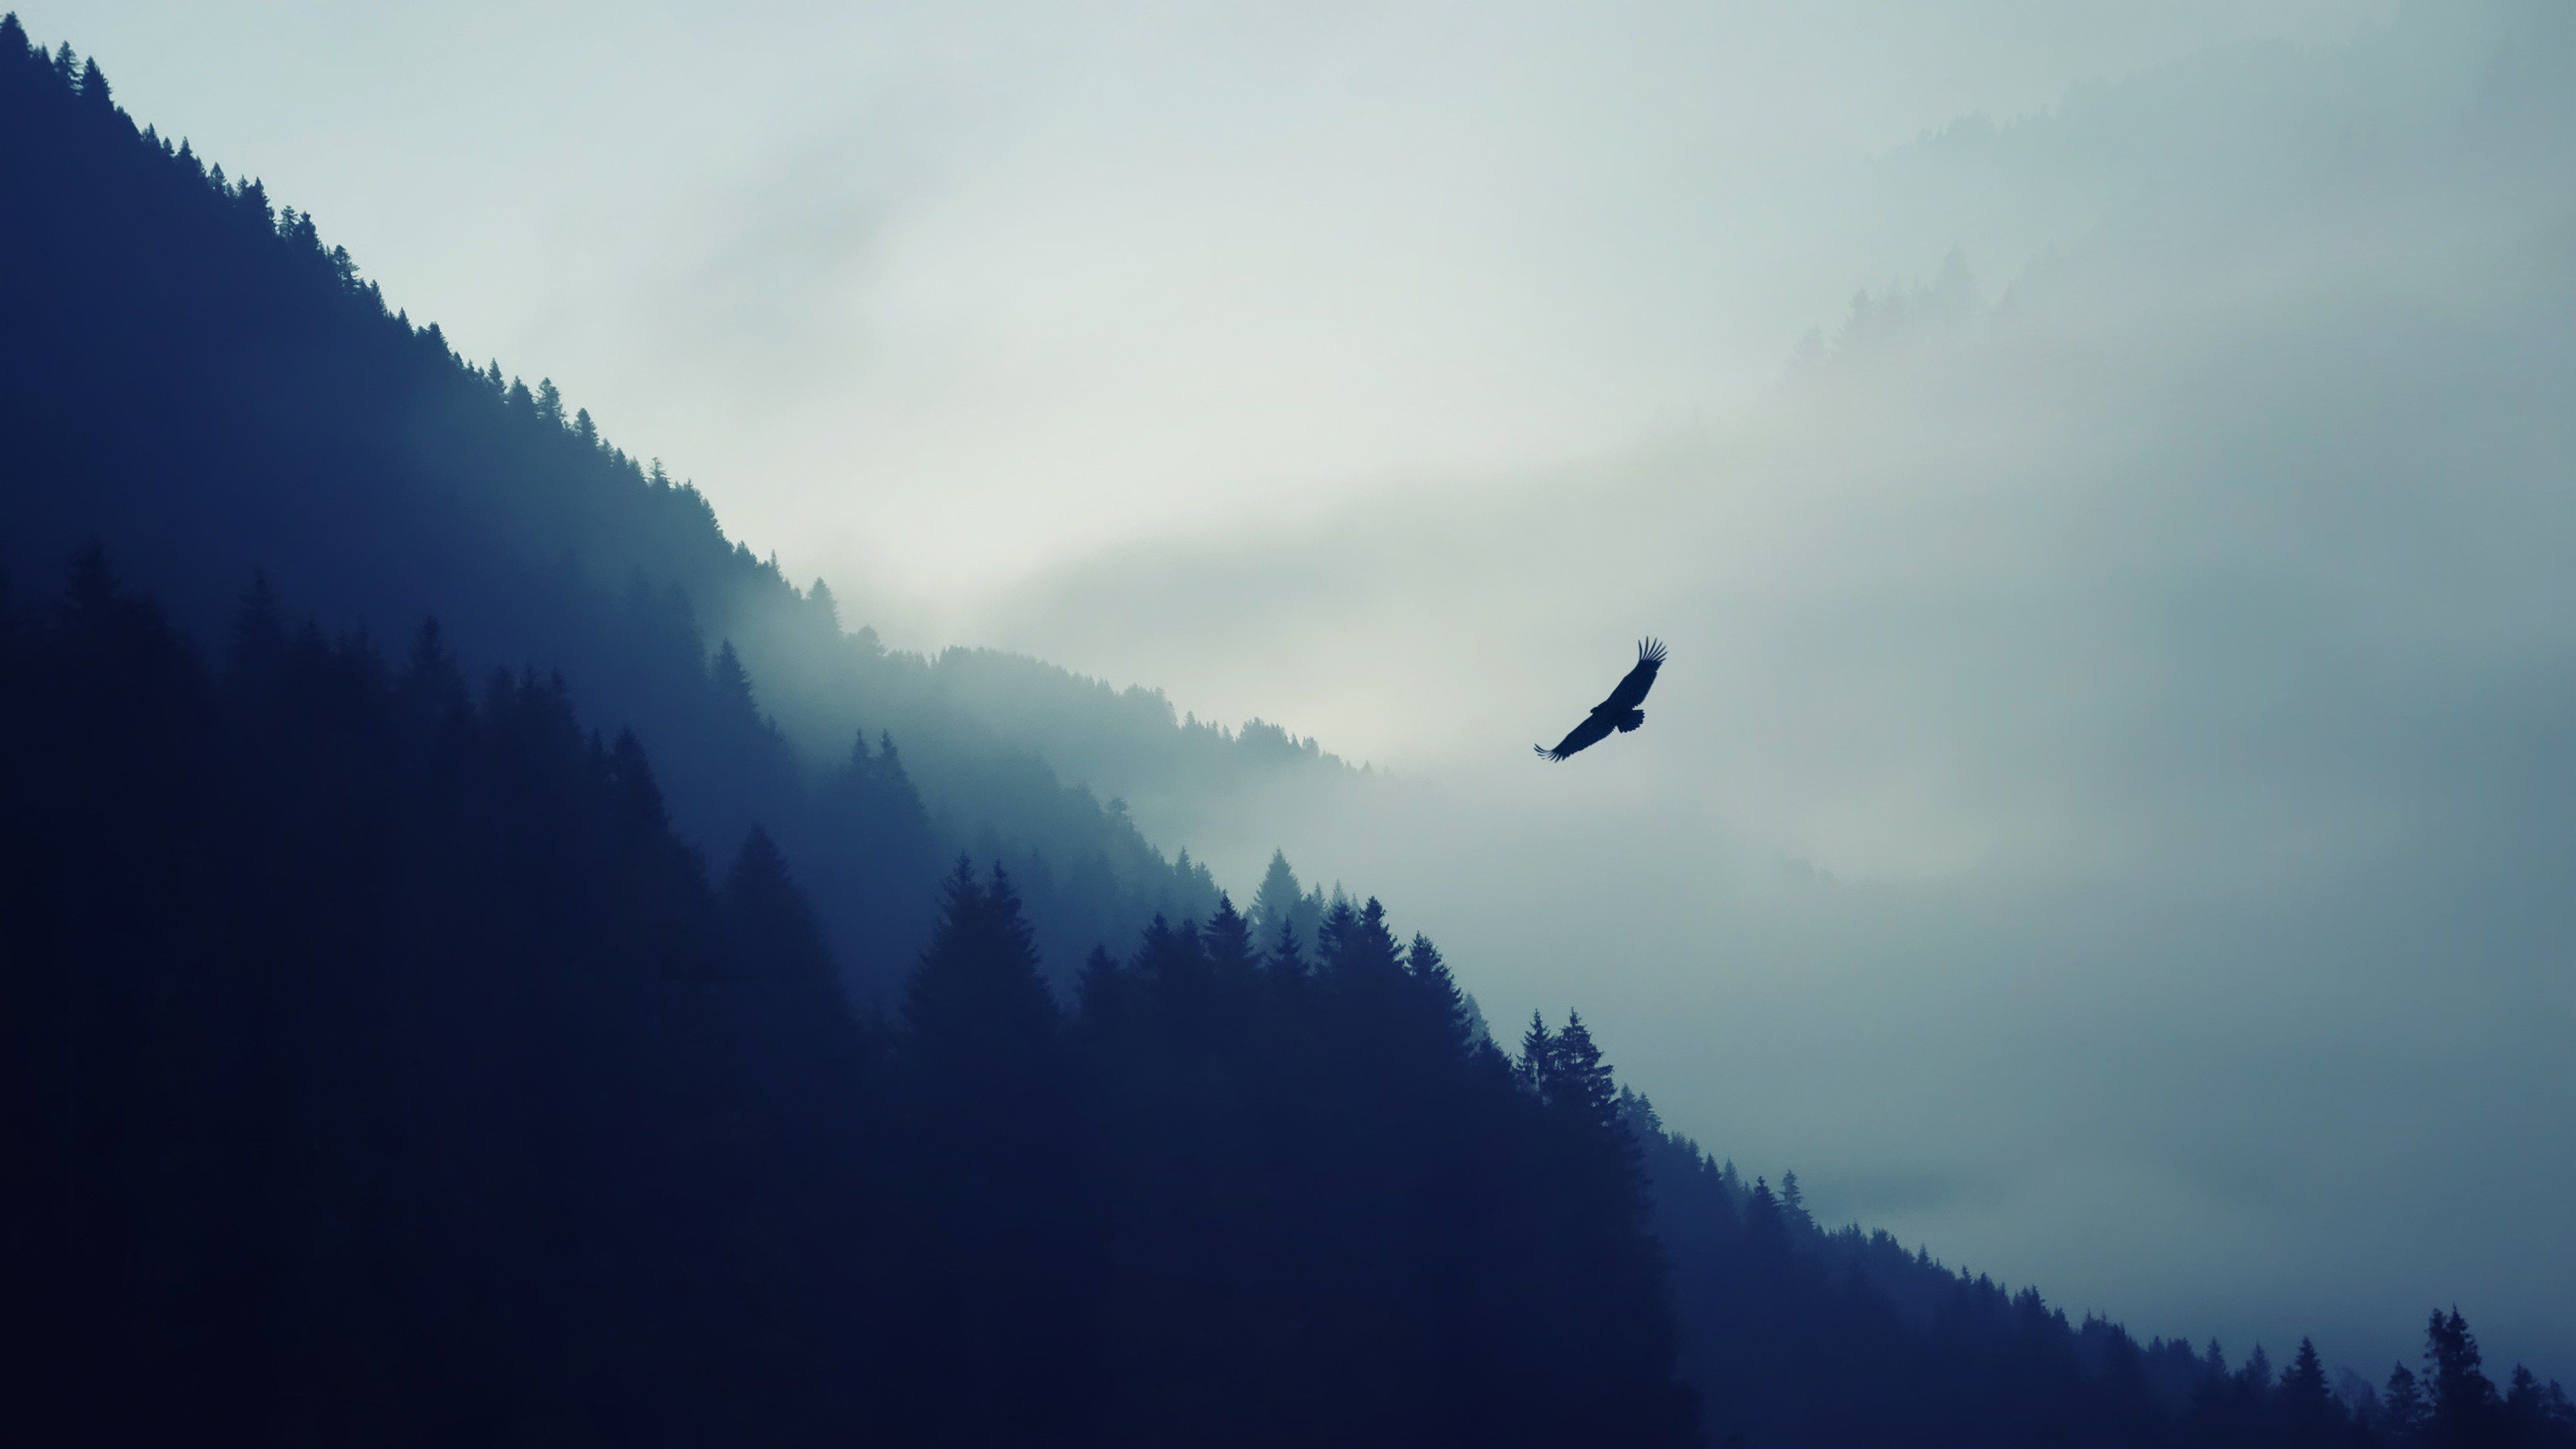 4k Nature Mountain Eagle Fog